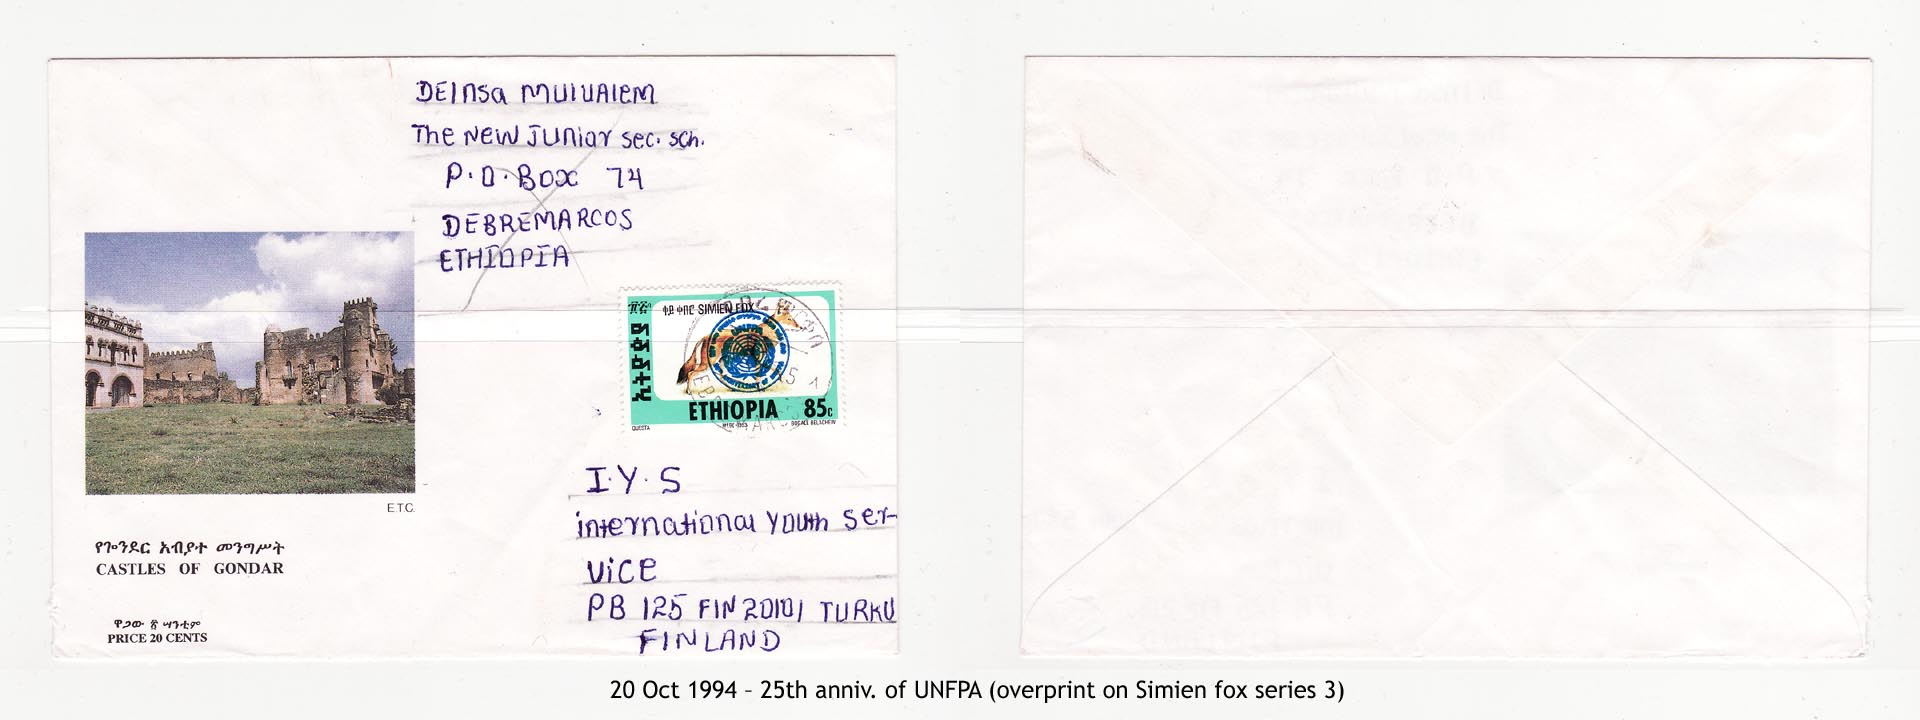 19941020 – 25th anniv. of UNFPA (overprint on Simien fox series 3)